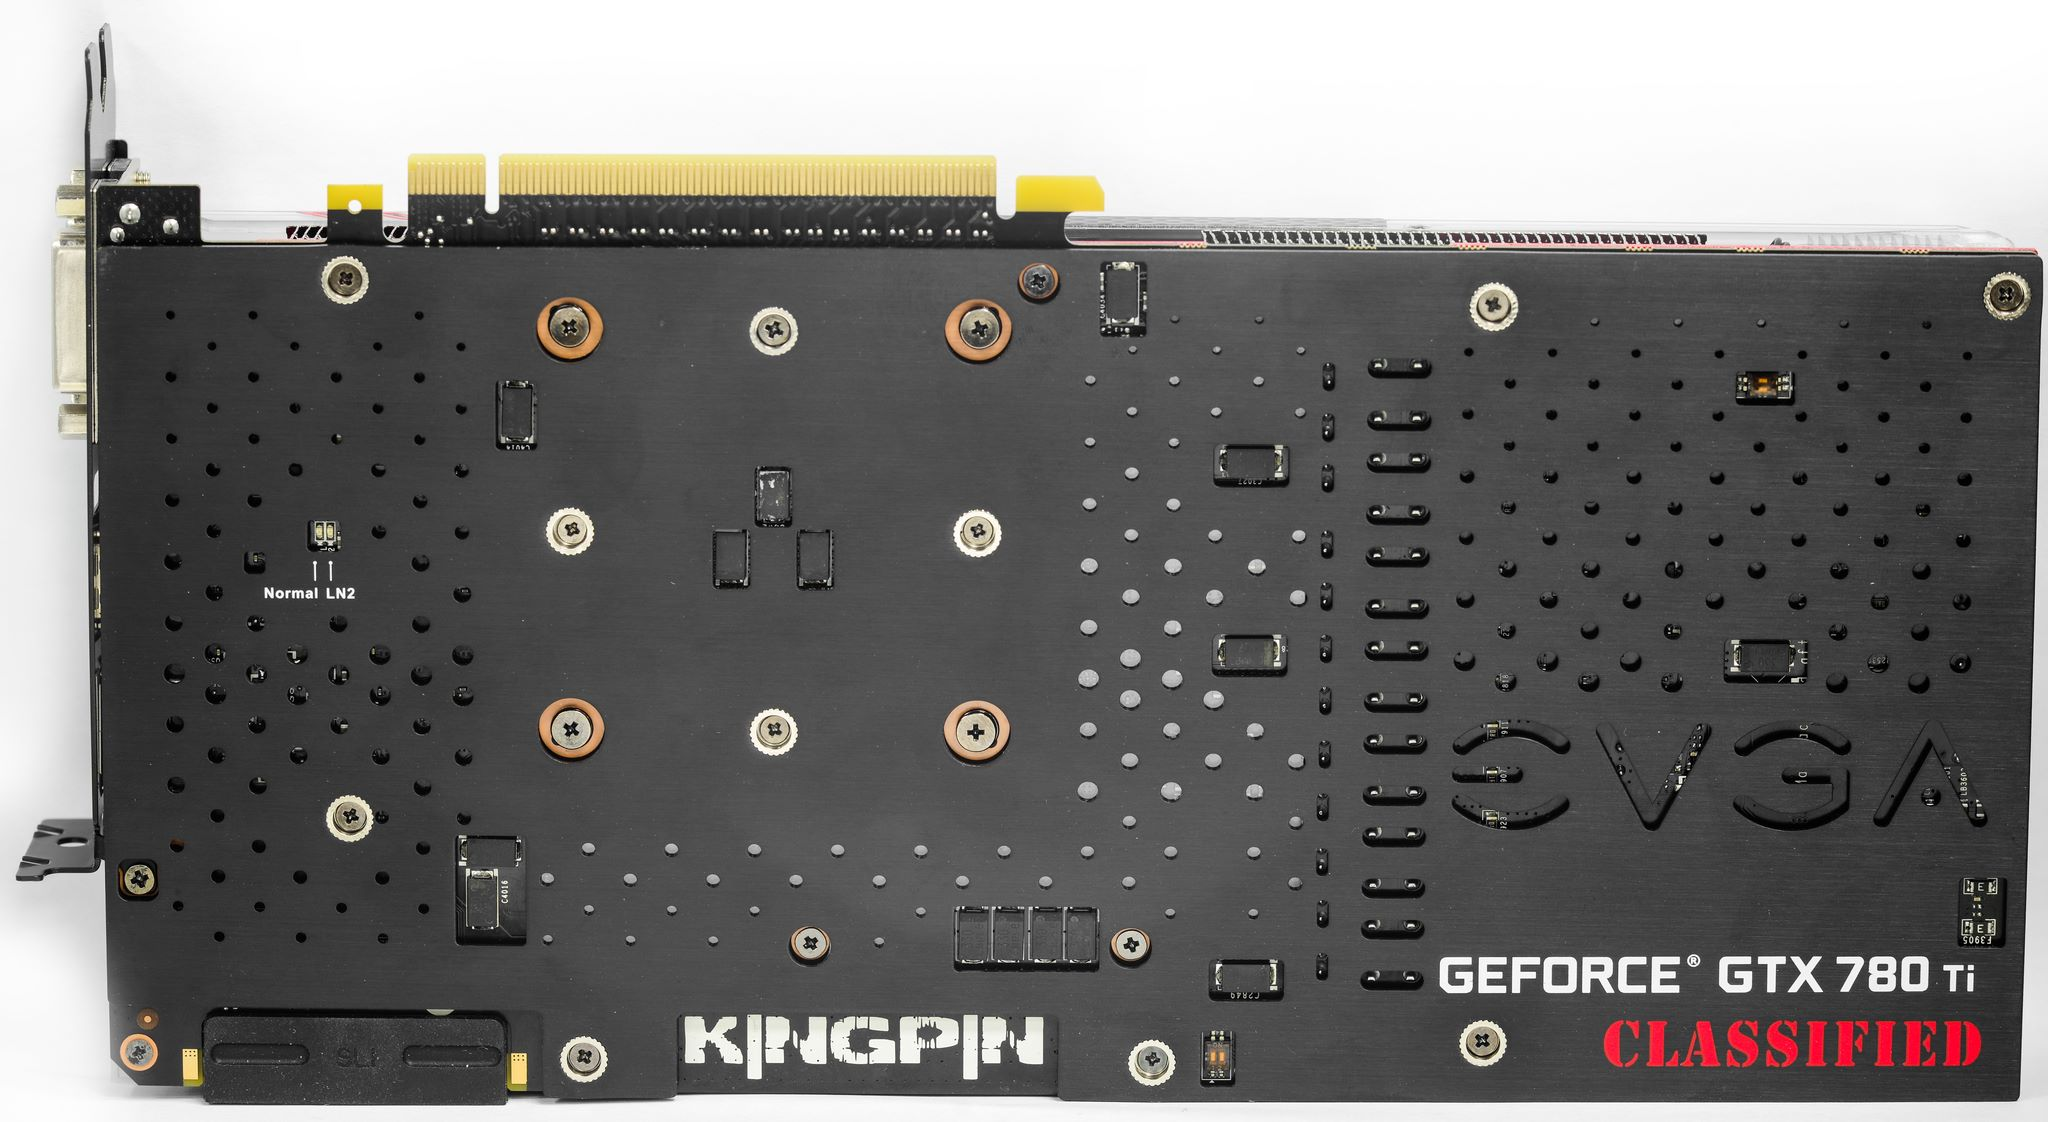 EVGA GTX 780 Ti Classified kingpin backplate